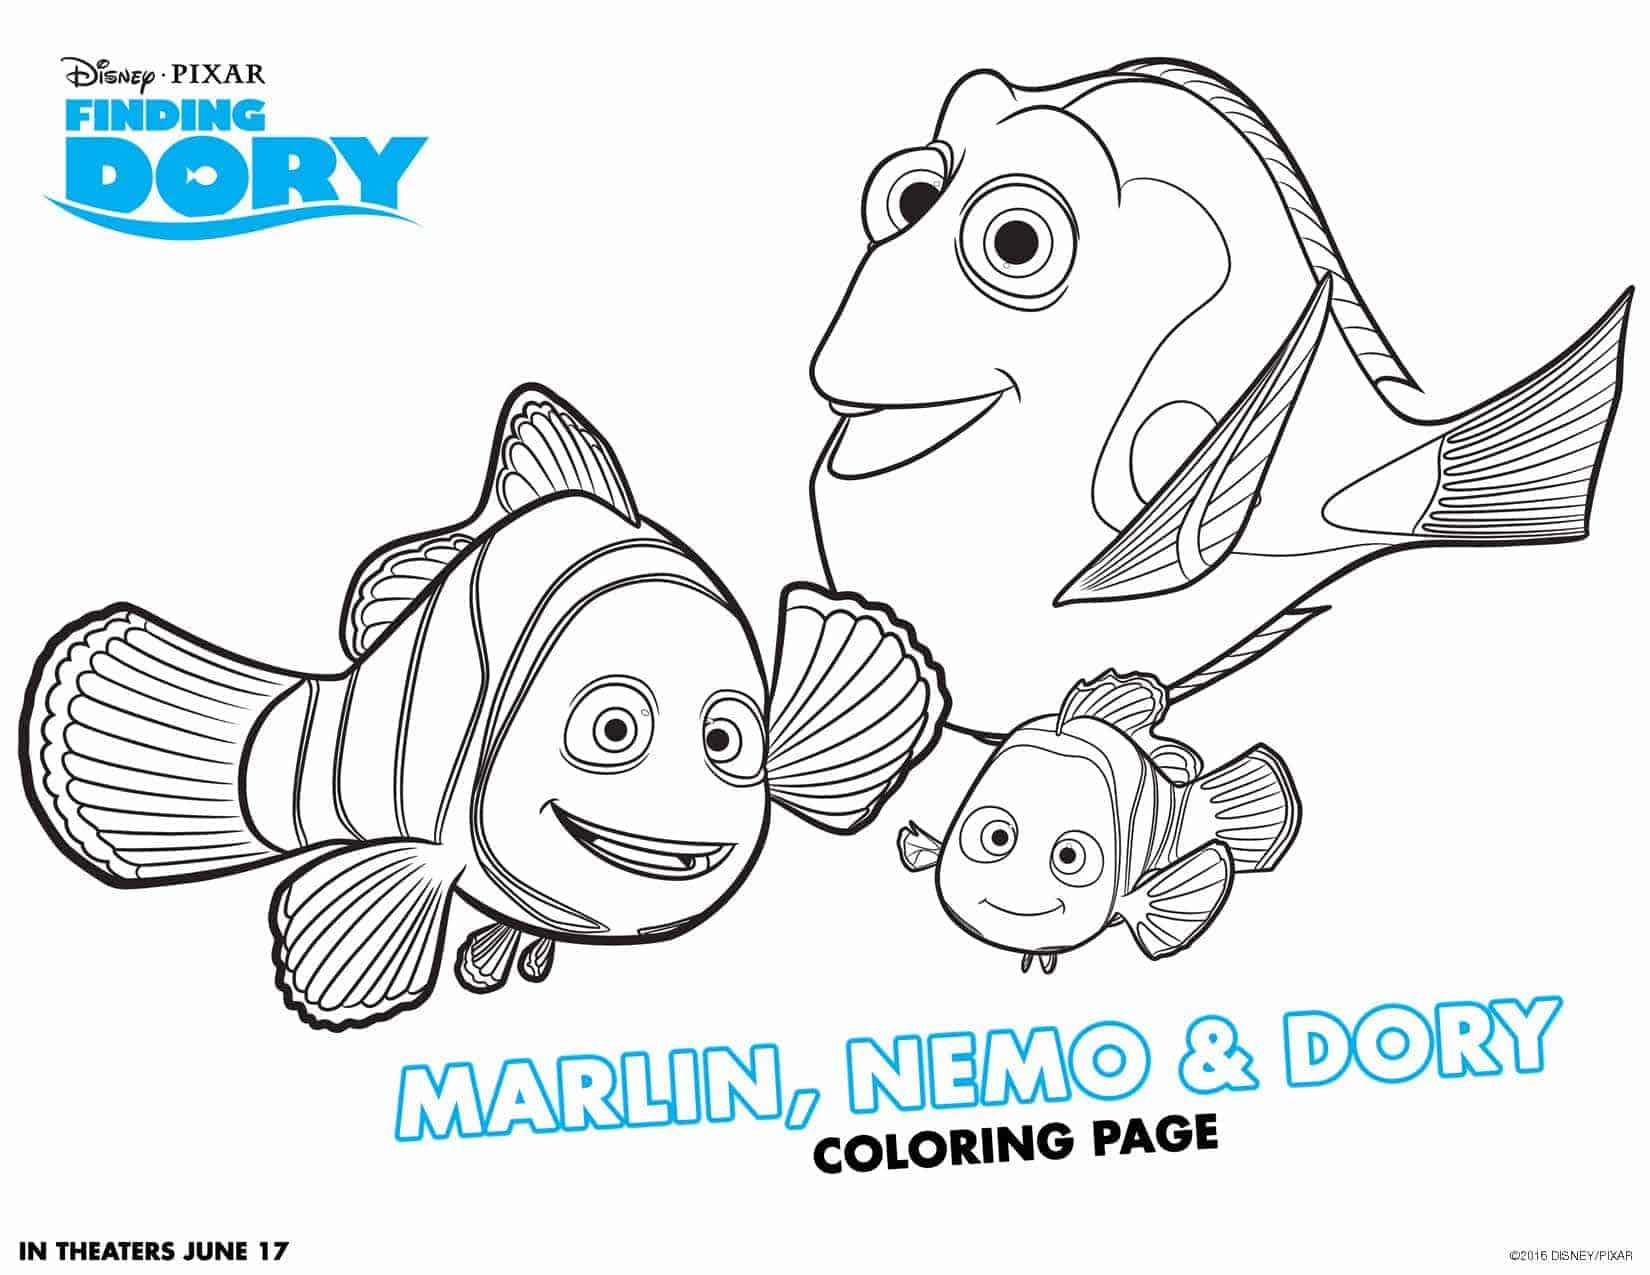 Finding Dory Coloring Pages and Activity Sheets - Lola Lambchops